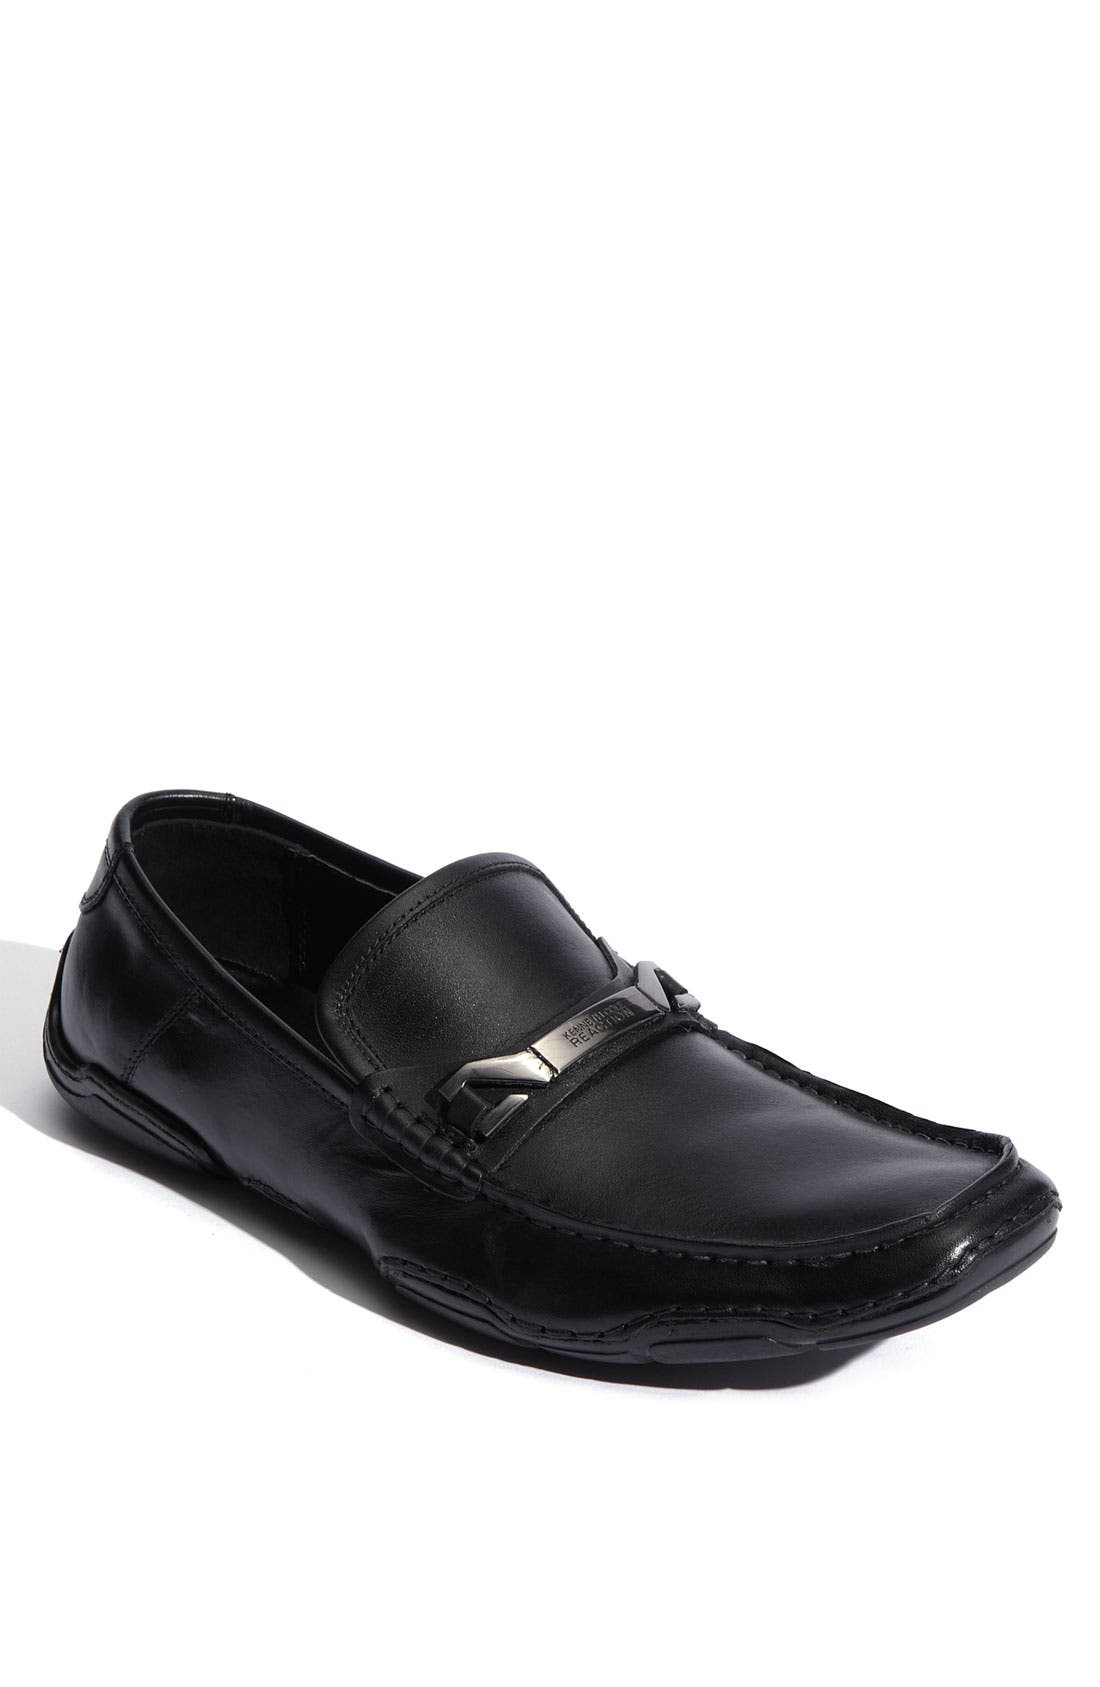 Alternate Image 1 Selected - Kenneth Cole Reaction 'Post Launch' Loafer